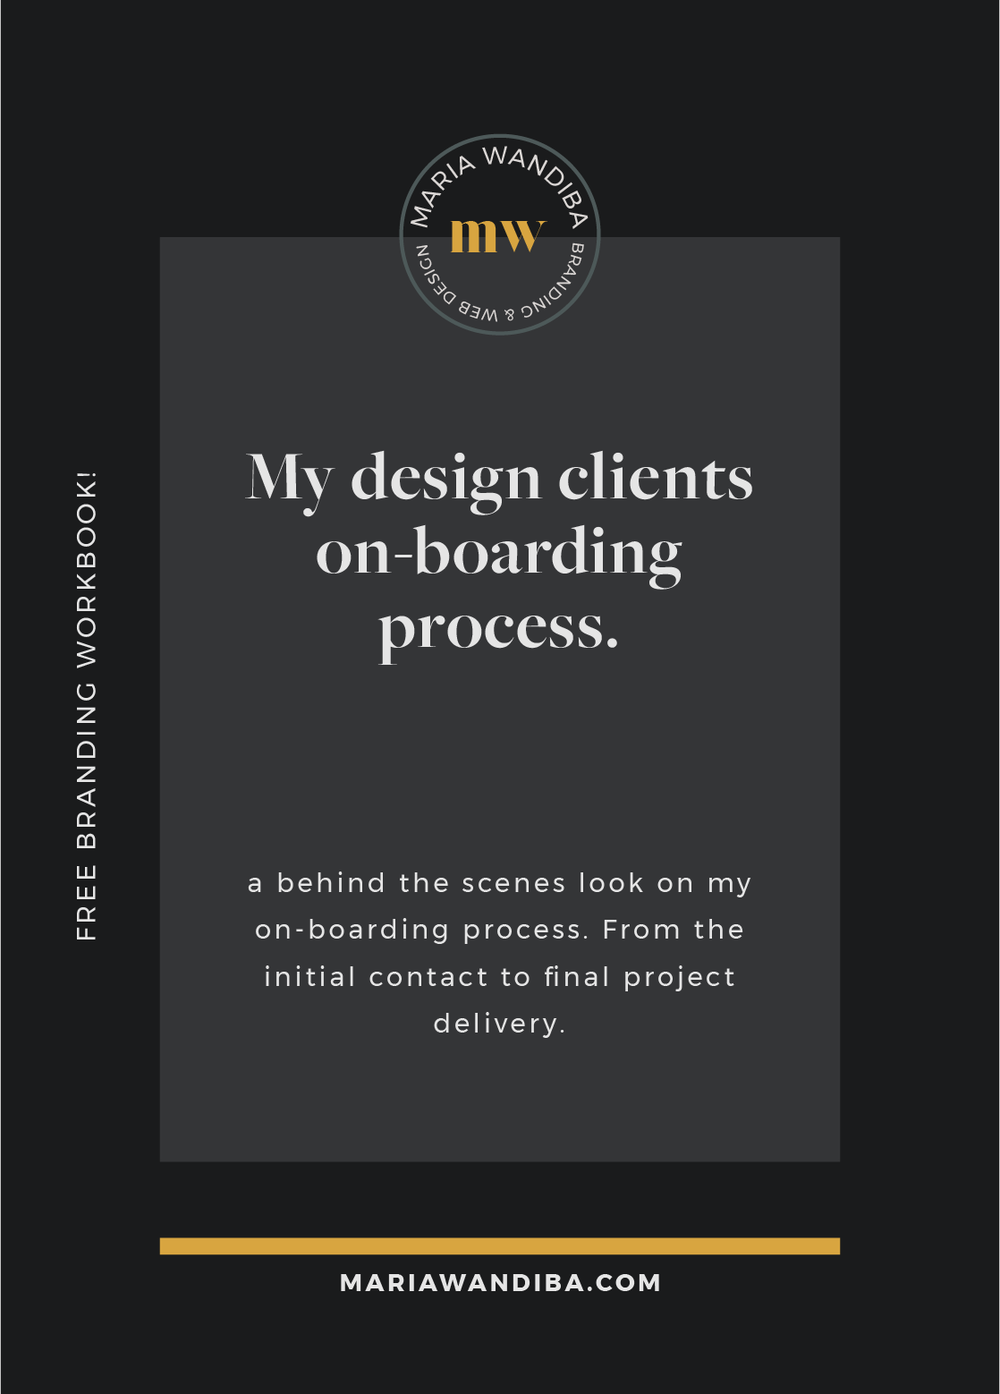 Onboarding-process-for-brand-design-clients.png